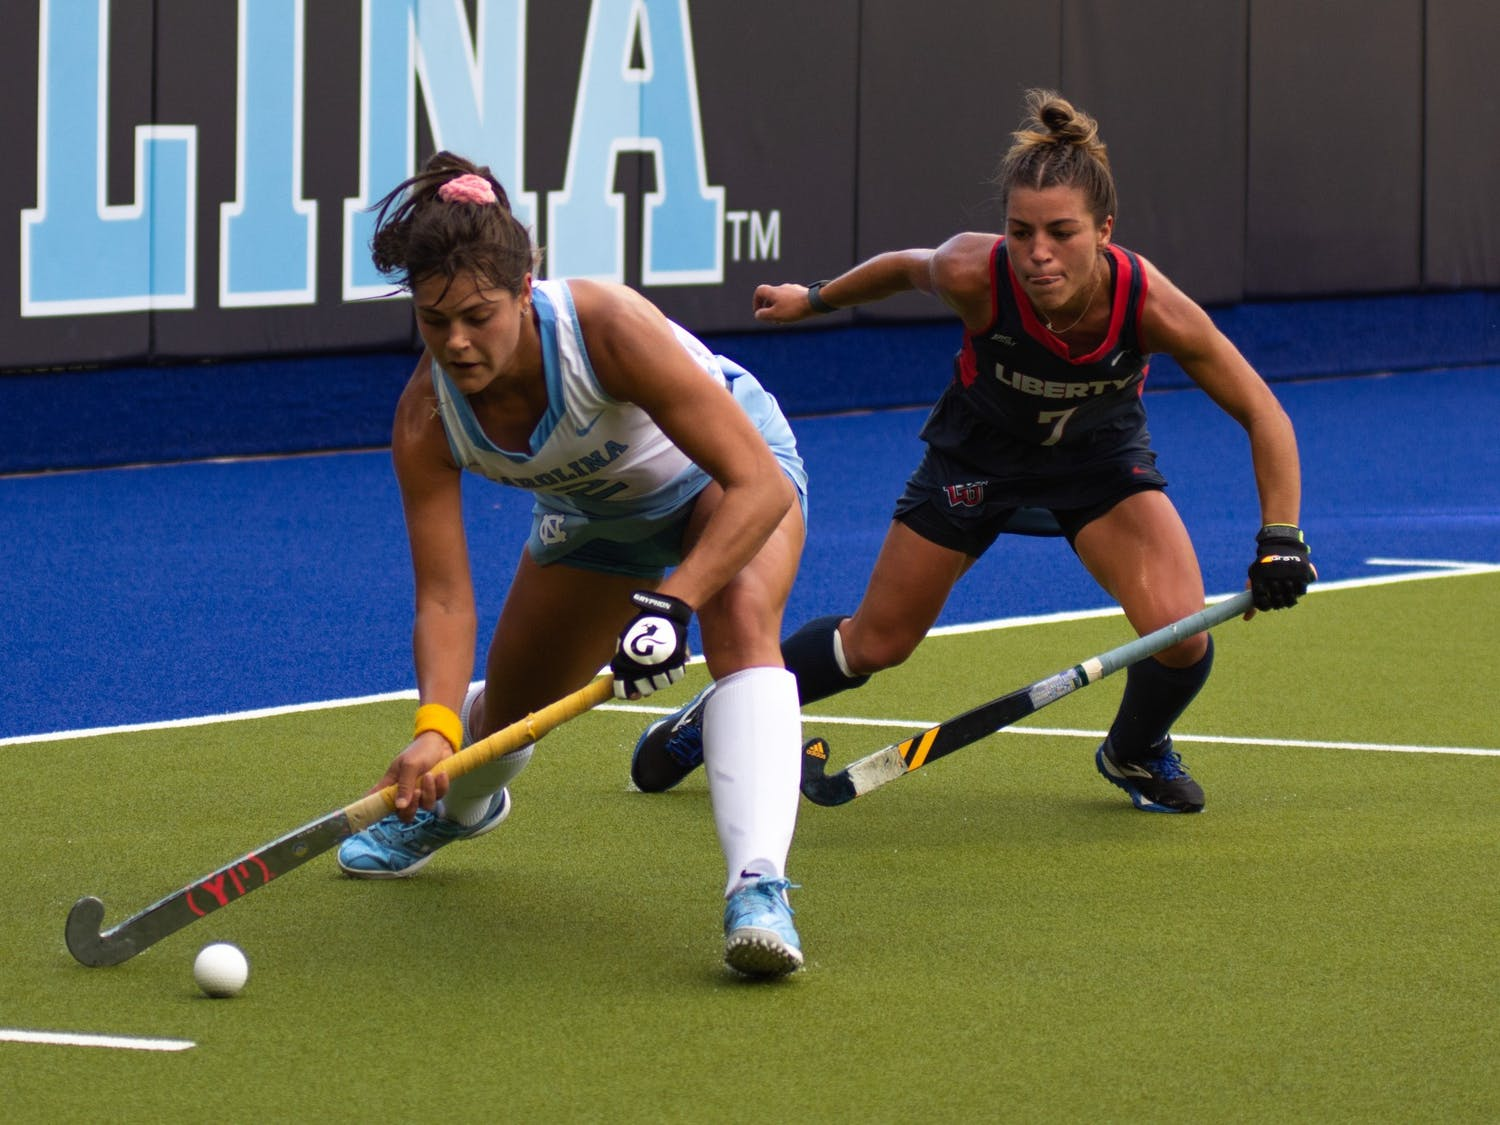 Senior forward Meredith Sholder (2) bats the ball during UNC's Oct. 10 field hockey game against Liberty. The game proved to be a loss for the Tar Heels–Liberty headed home with a 4-0 win.